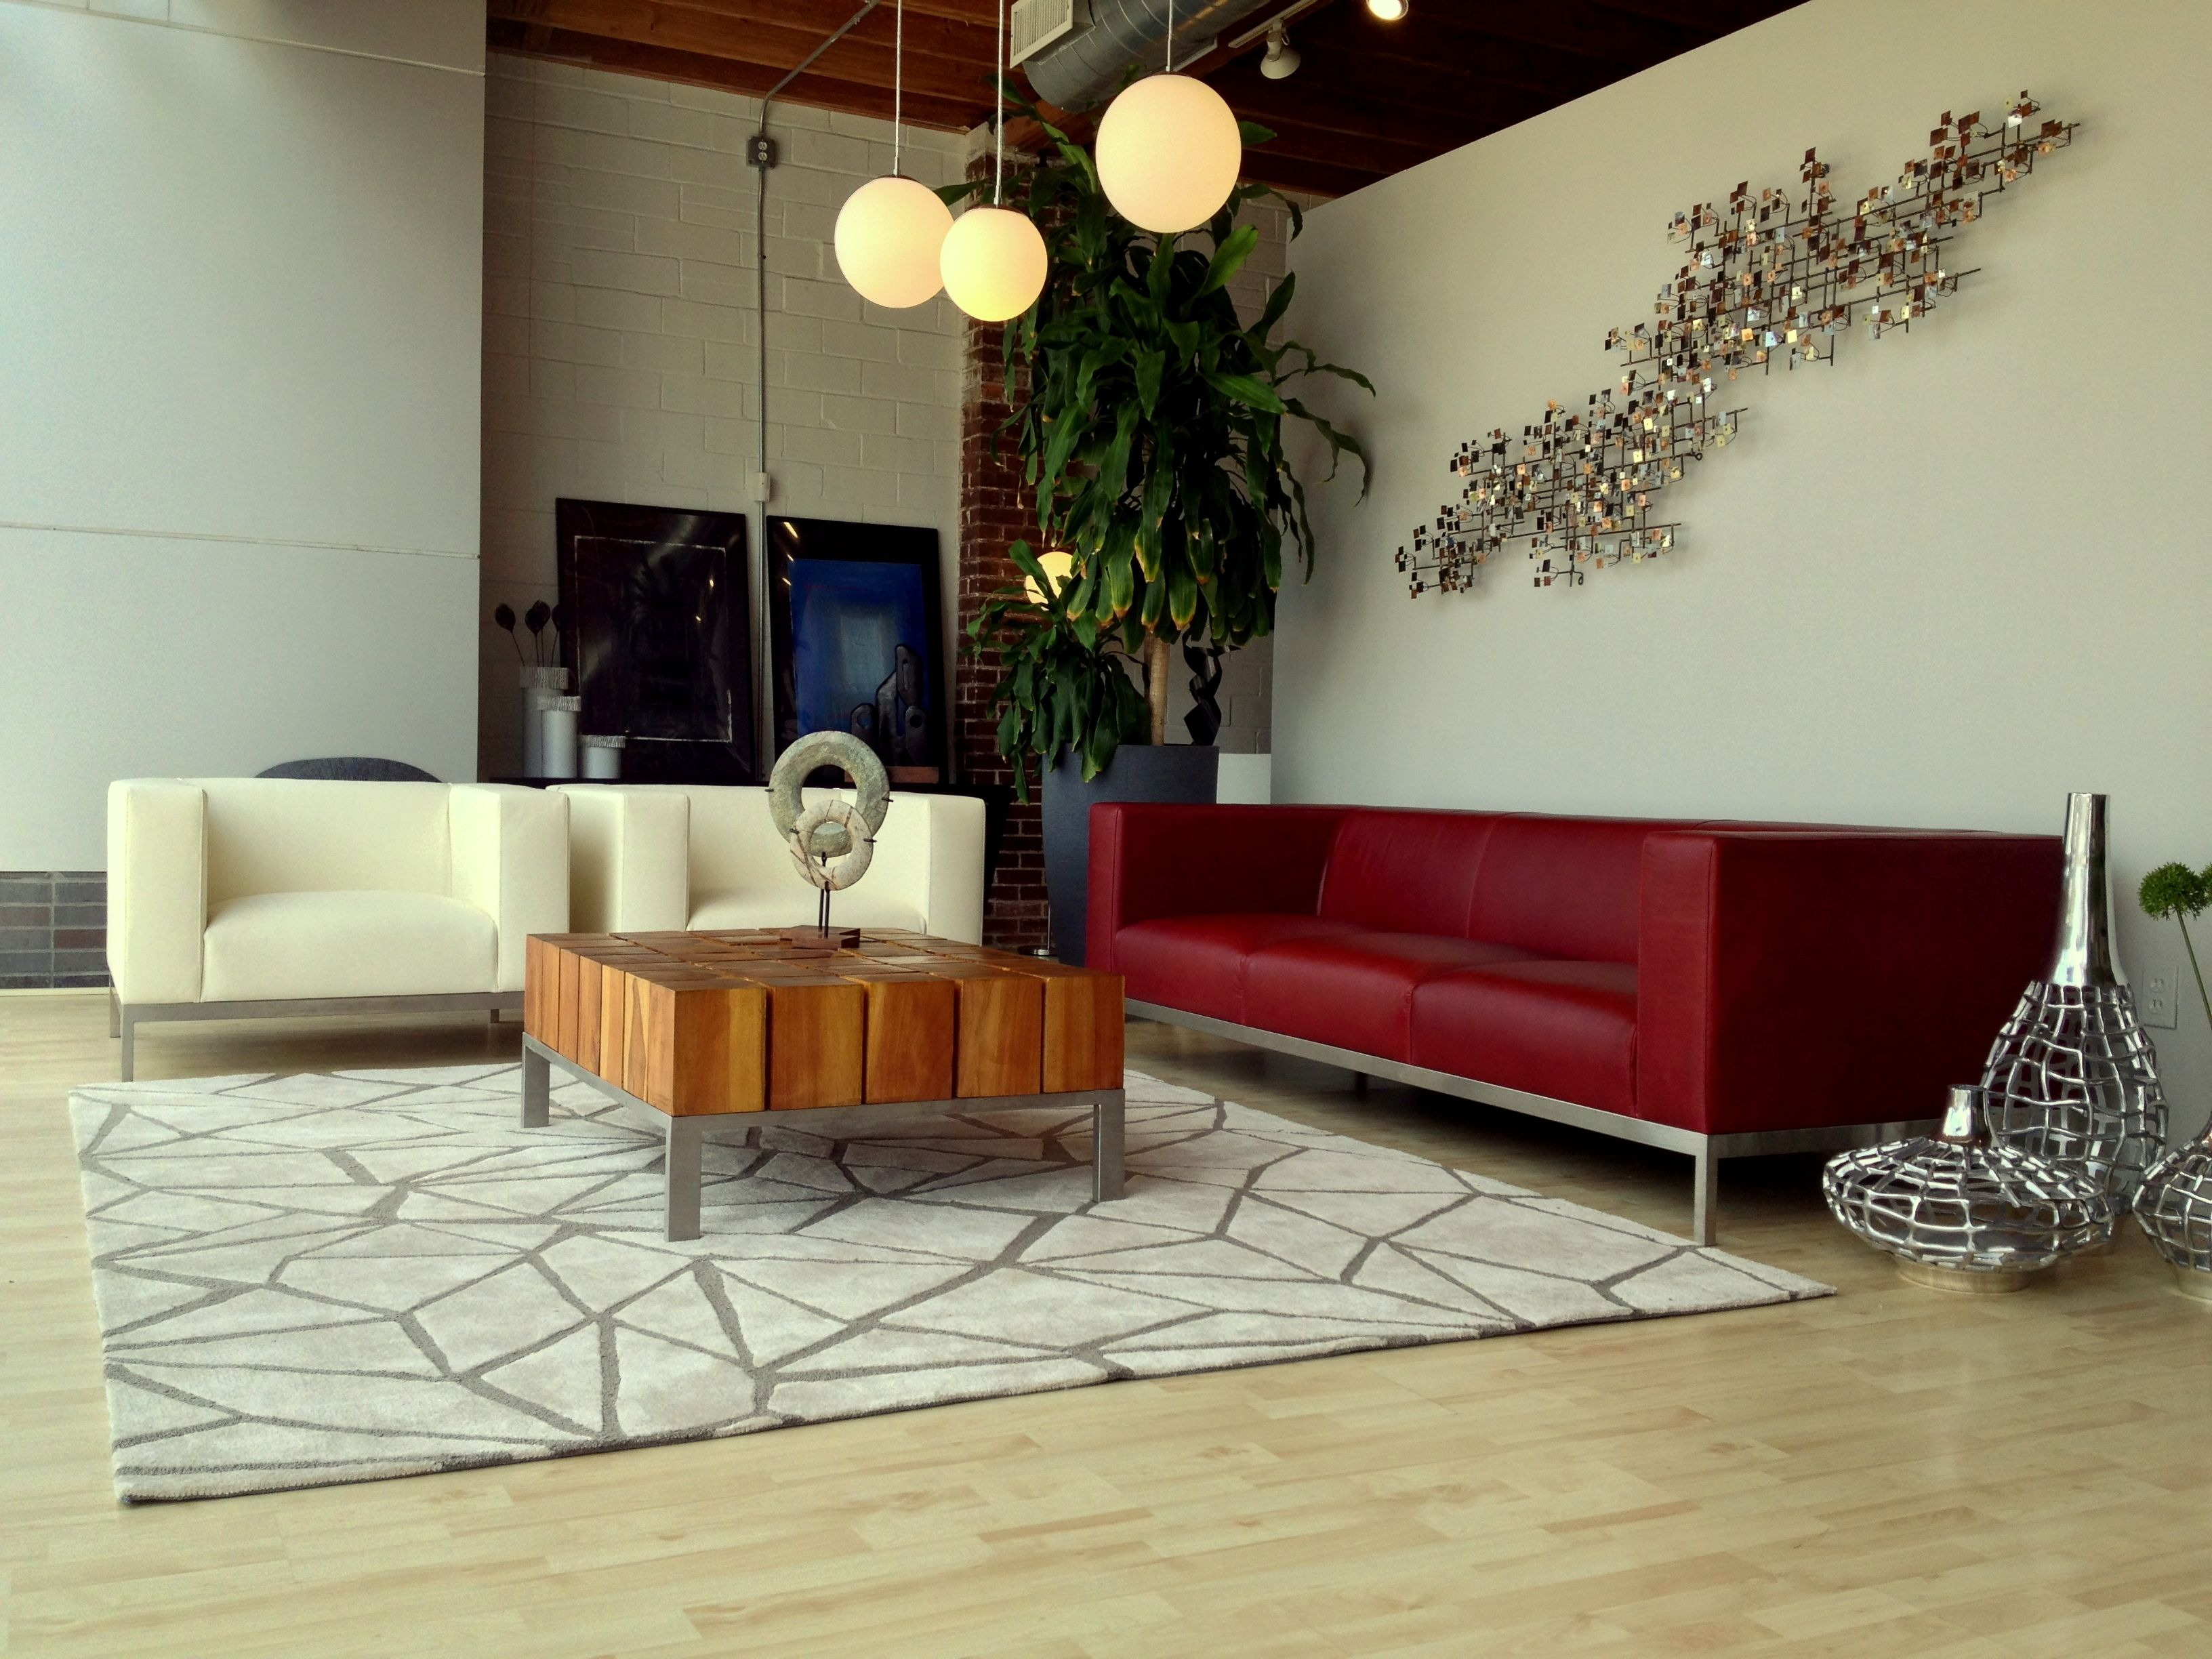 Exclusive Contemporary And Modern Furniture Store In Houston, TX. Interior  Design Services And Customizable Pieces For Your Needs.